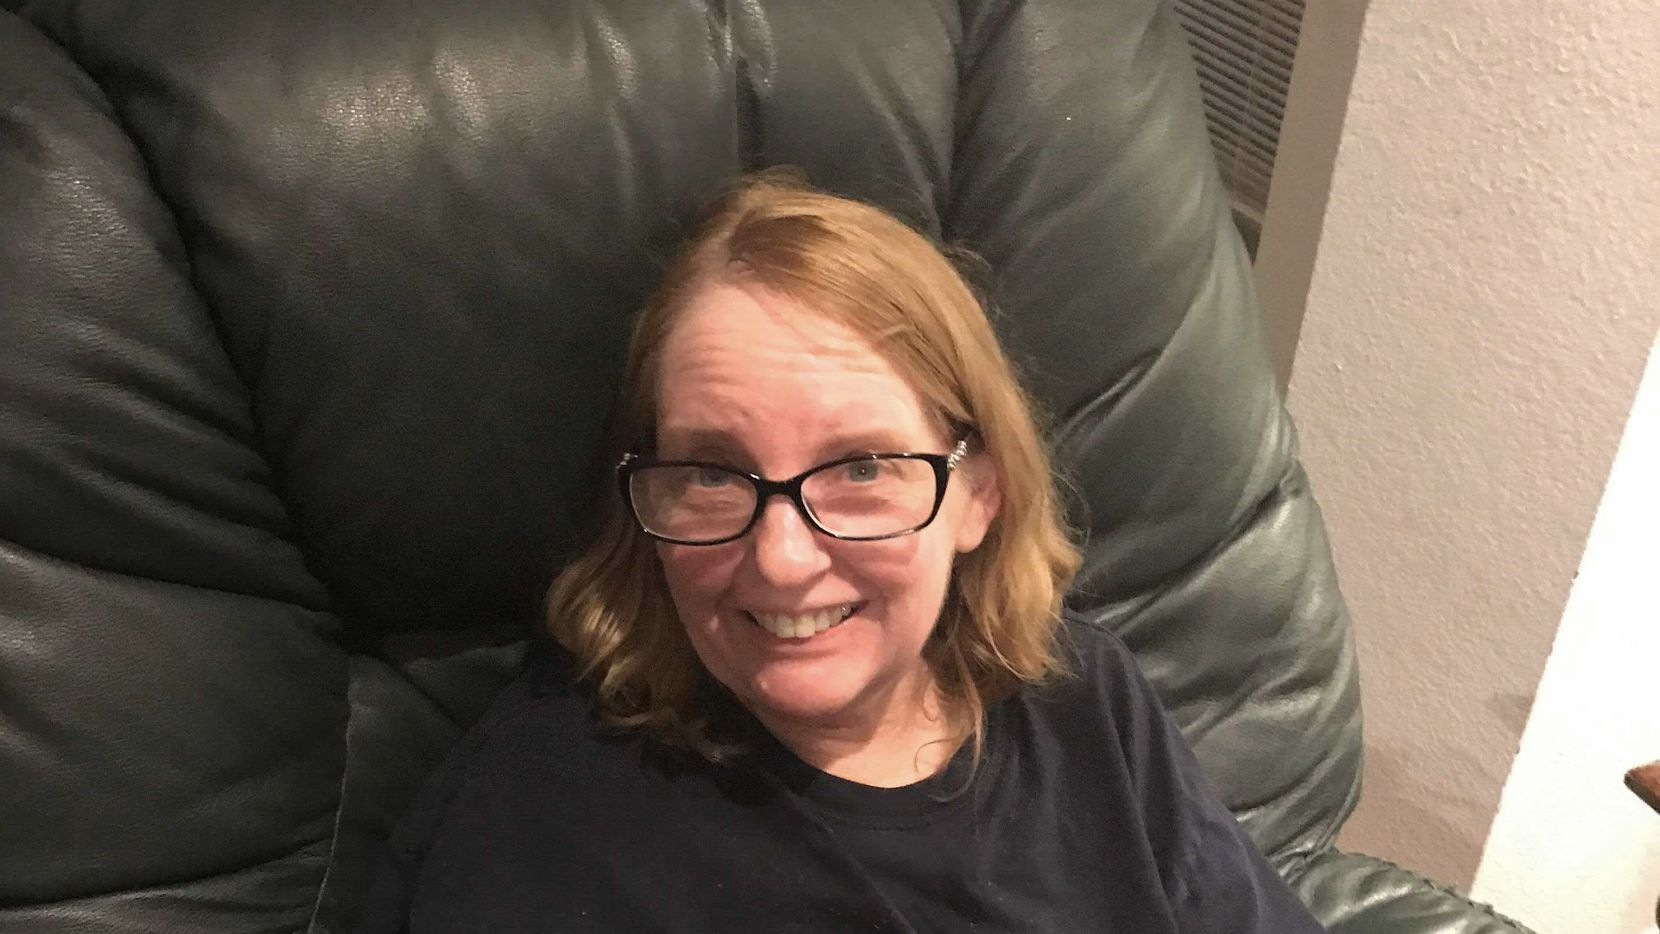 Rebecca Watson, 60, lives with a rare form of ALS and has very limited mobility. When the storm hit, she could not go outside her Victory Park home to see the snow, so she asked neighbors on NextDoor to send her photos. The response was overwhelming. (Photo by Laura Watson)